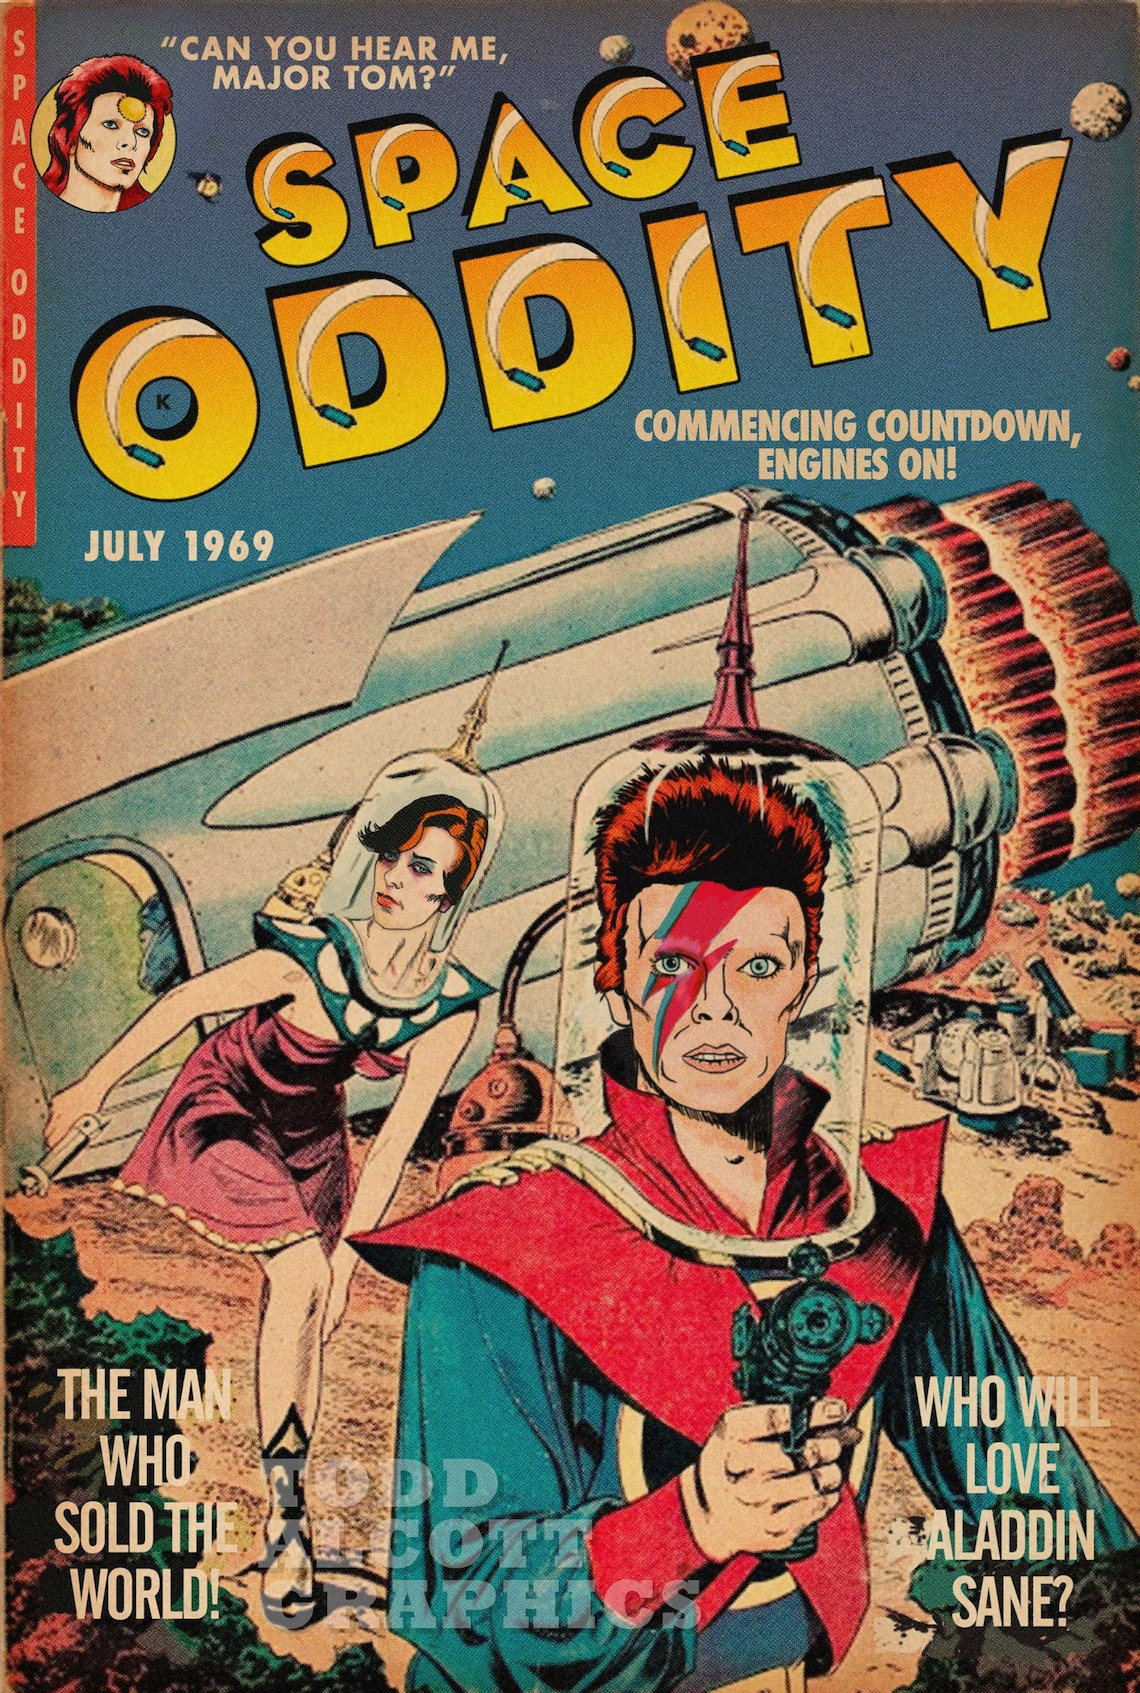 David Bowie Space Oddity Sci-Fi Comic Book Mashup image 0